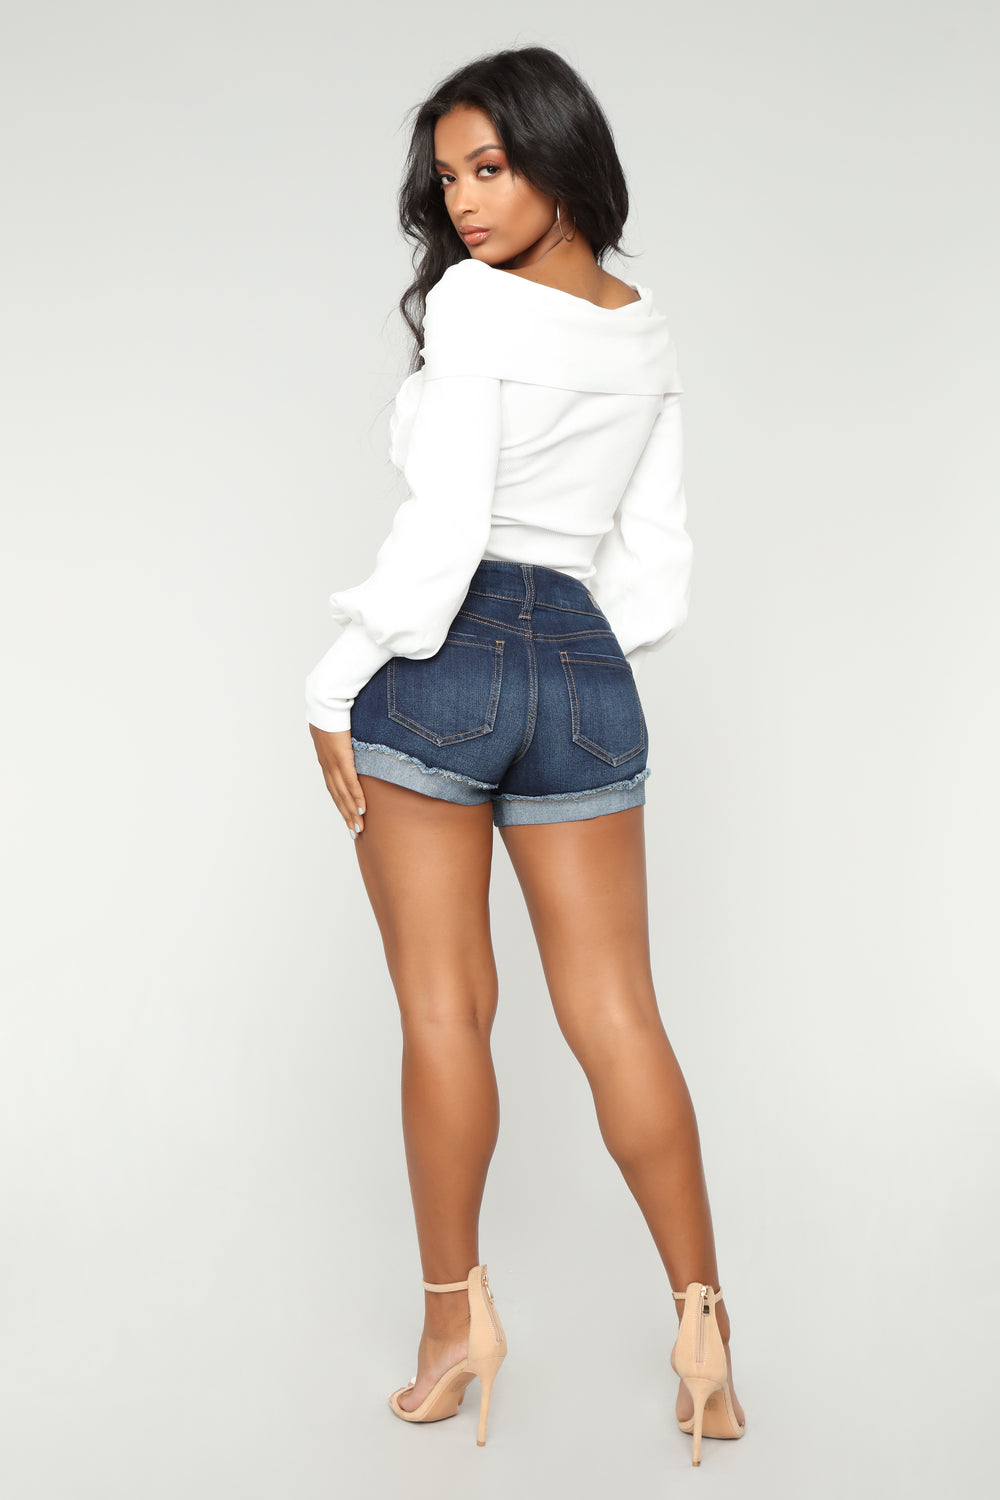 Moody Babe Sweater - White